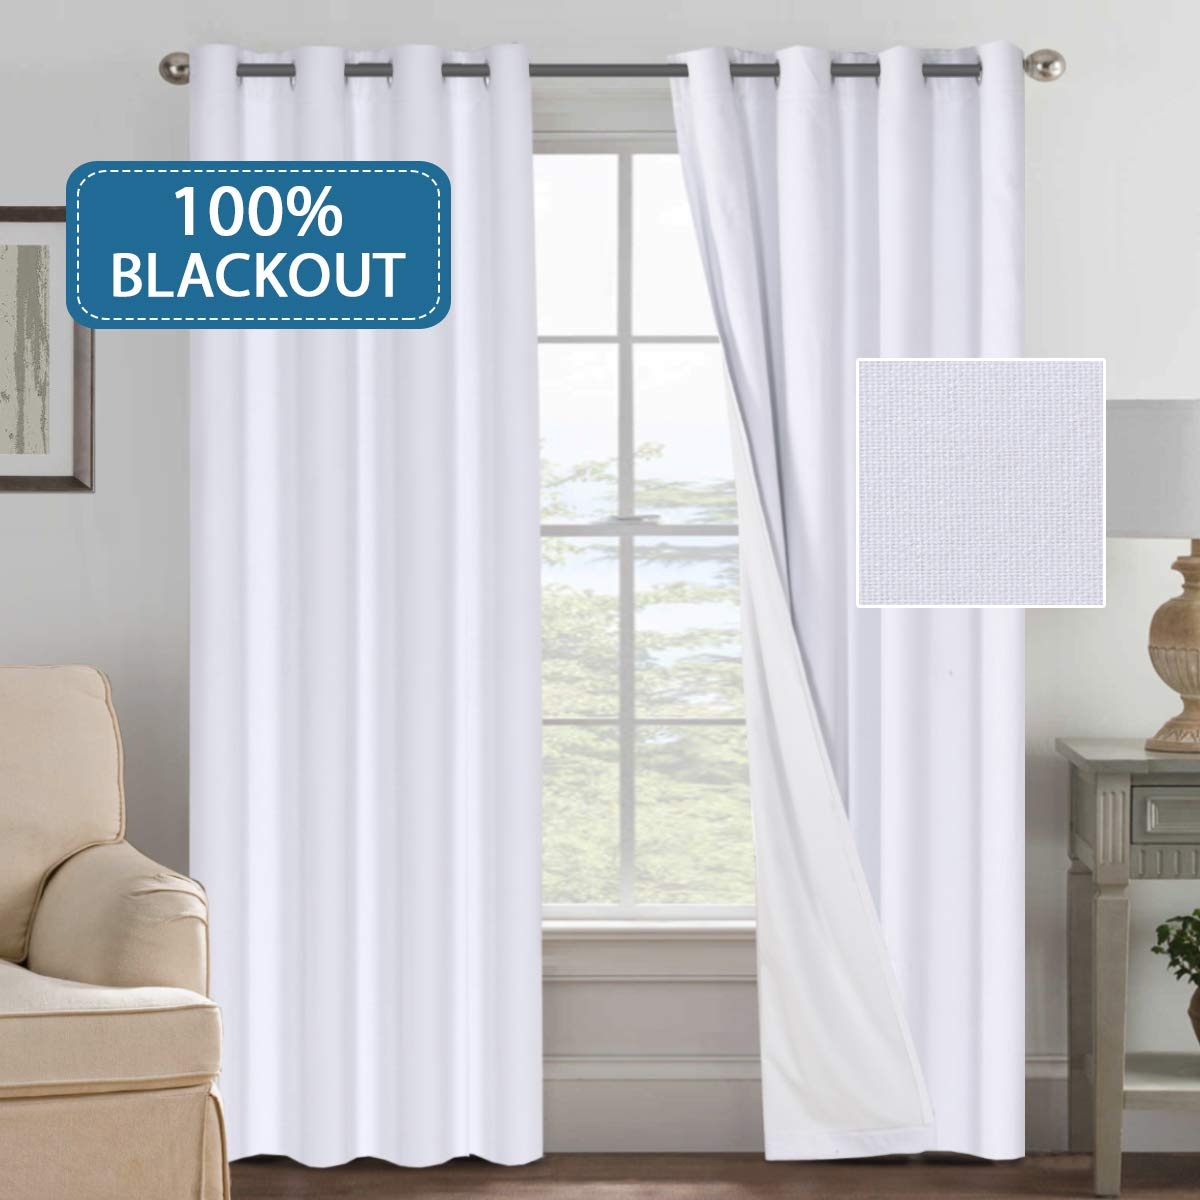 Primitive Linen Look 100% Blackout Curtains, Waterproof Burlap Fabric Curtains with White Thermal Insulated Liner, Grommet Top Curtains for Living Room /Bedroom (2 panels W52 x L96 inches, White)